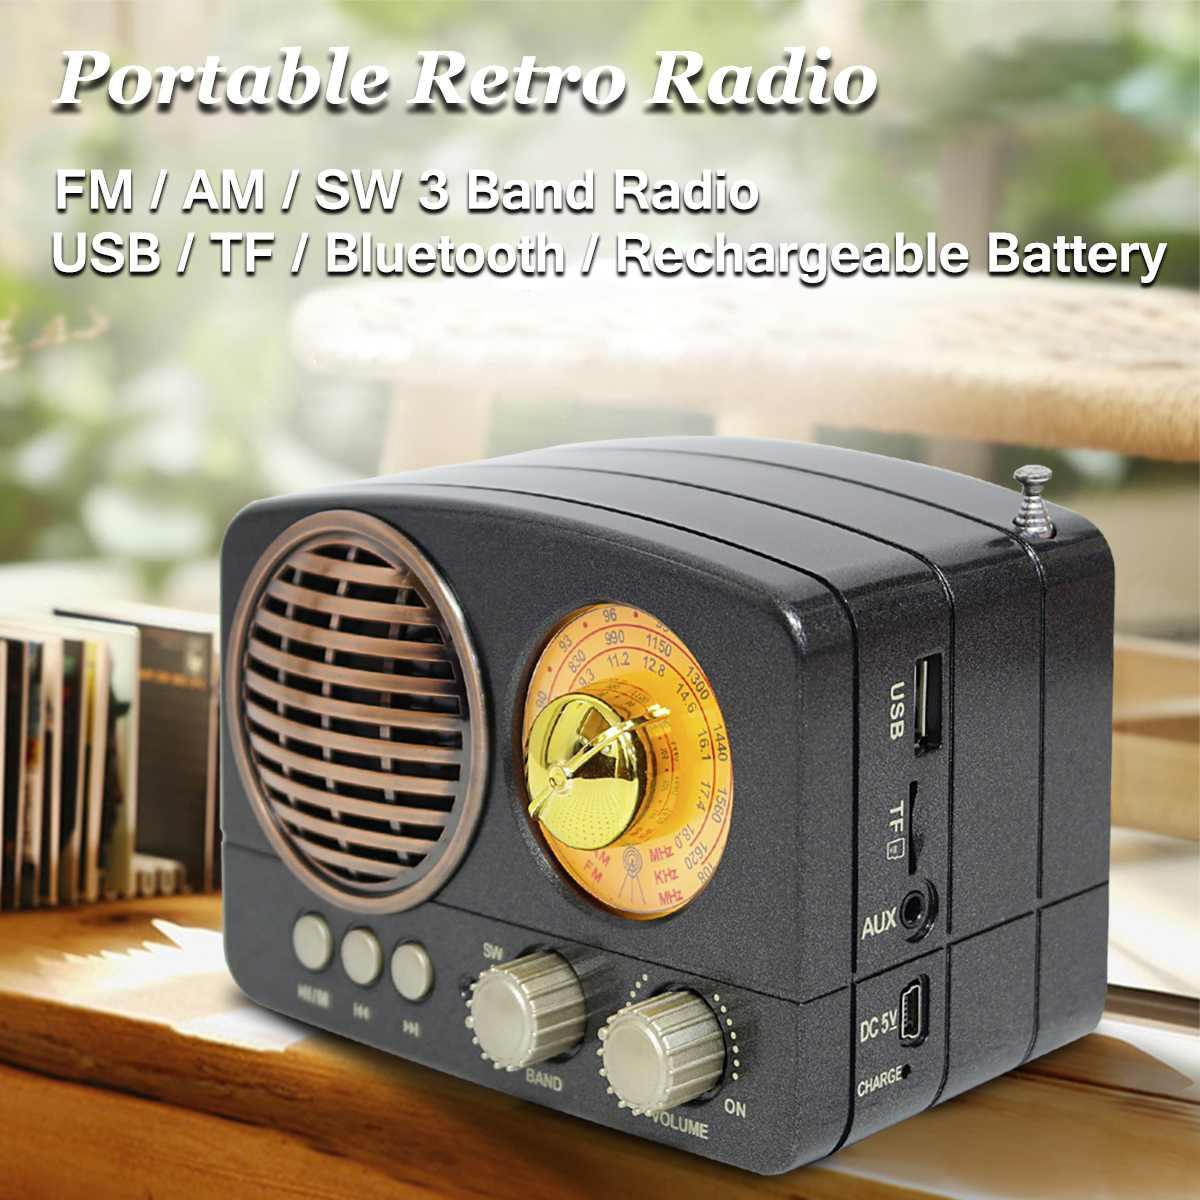 MIni Portable Retro Radio Handheld Receiver AM FM SW+bluetooth Speaker AUX USB TF MP3 Phone Music Player Rechargeable RadioMIni Portable Retro Radio Handheld Receiver AM FM SW+bluetooth Speaker AUX USB TF MP3 Phone Music Player Rechargeable Radio